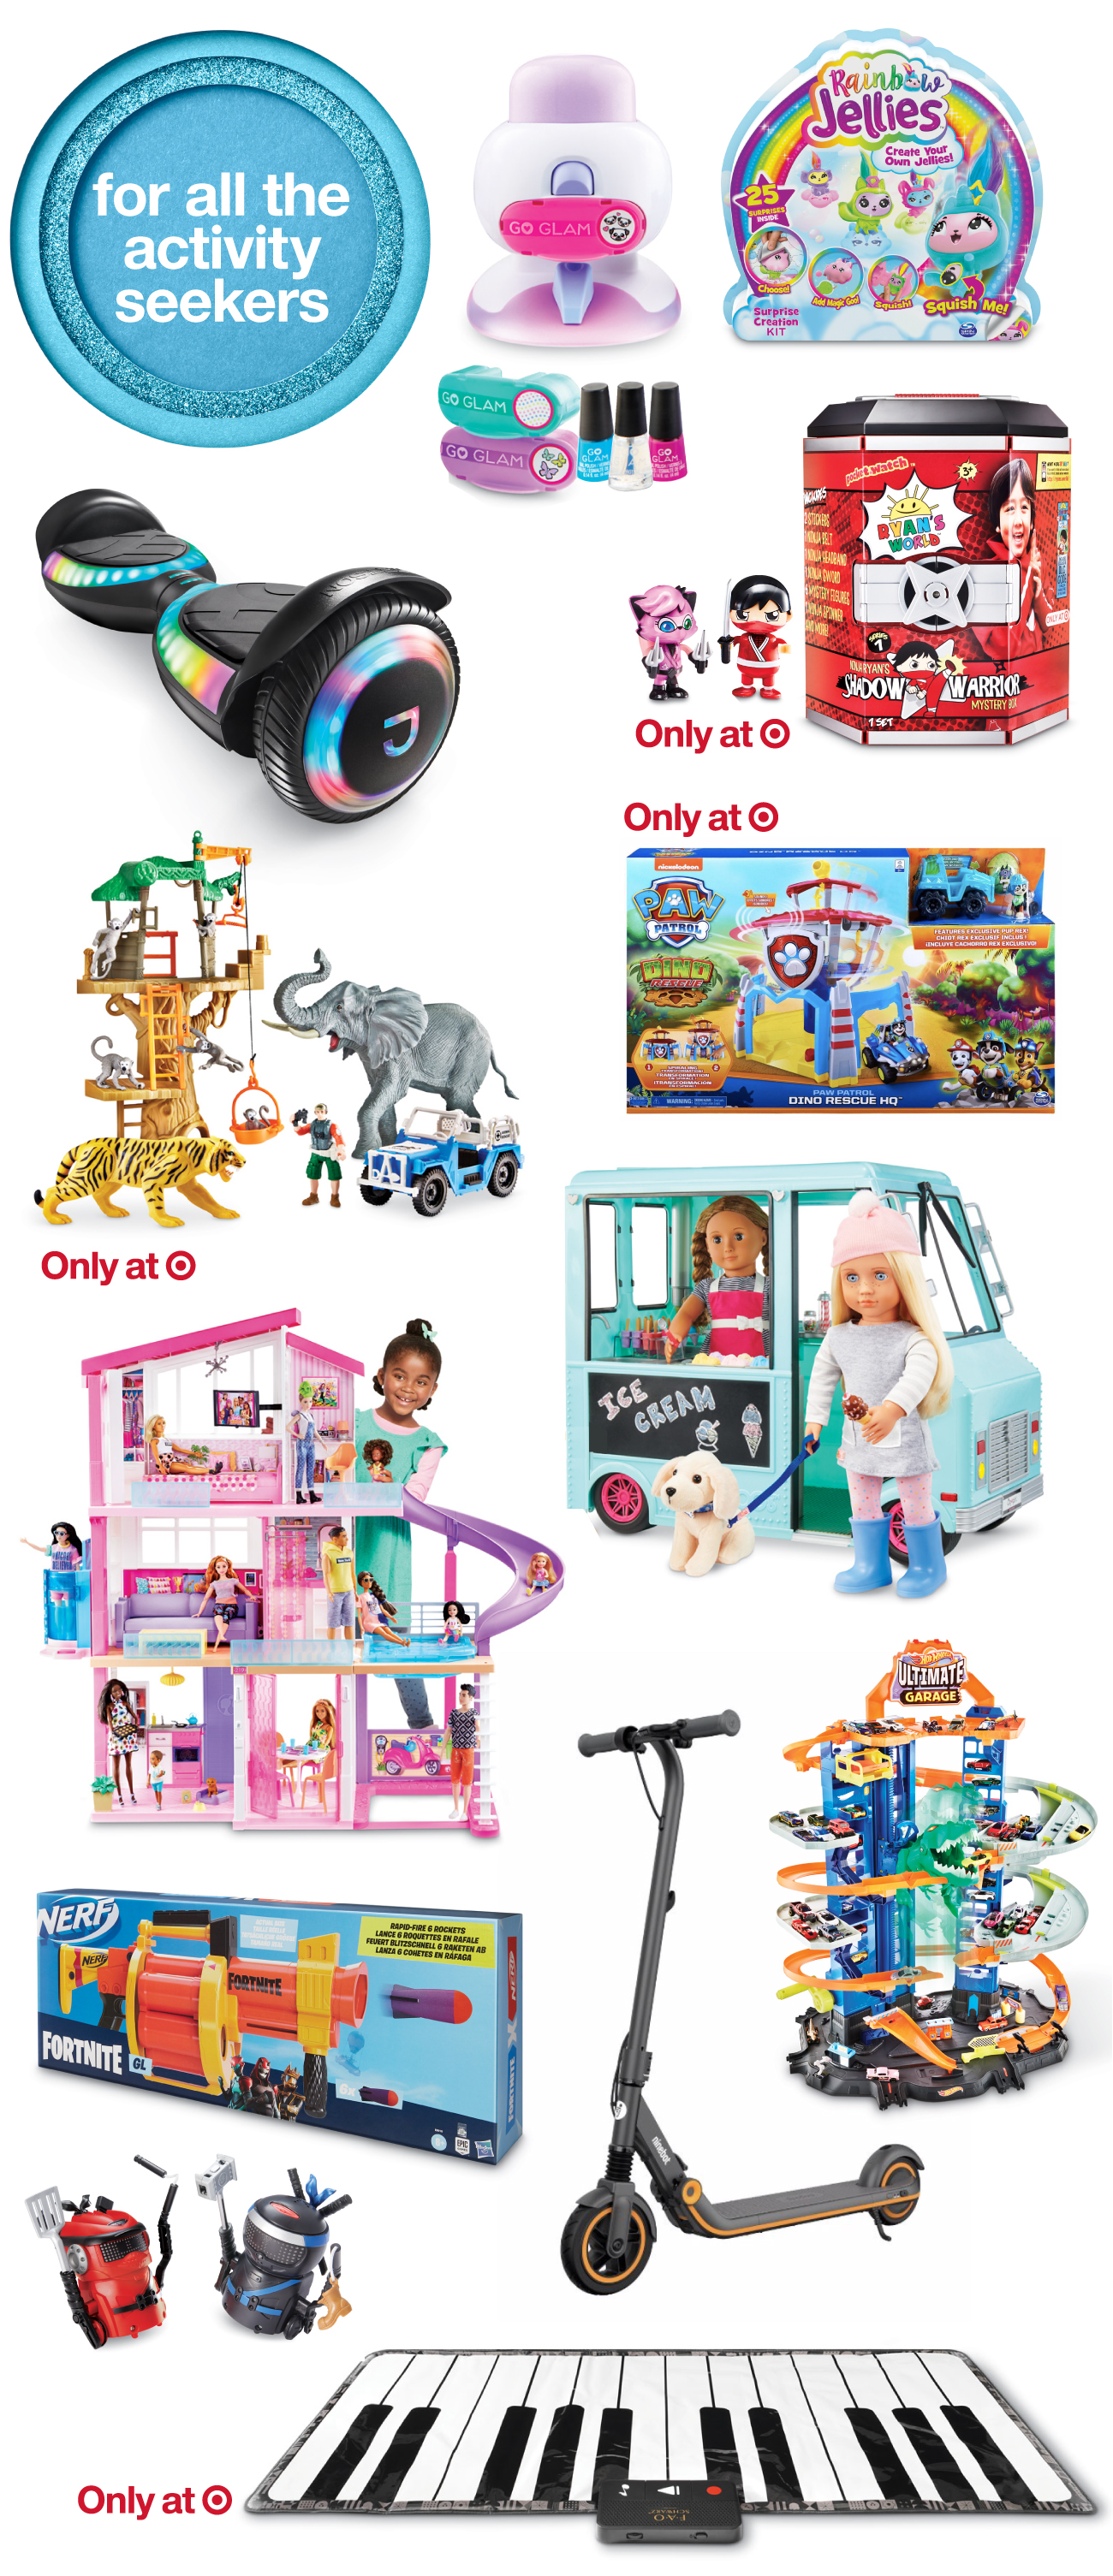 A collage of top toys and games for activity seekers